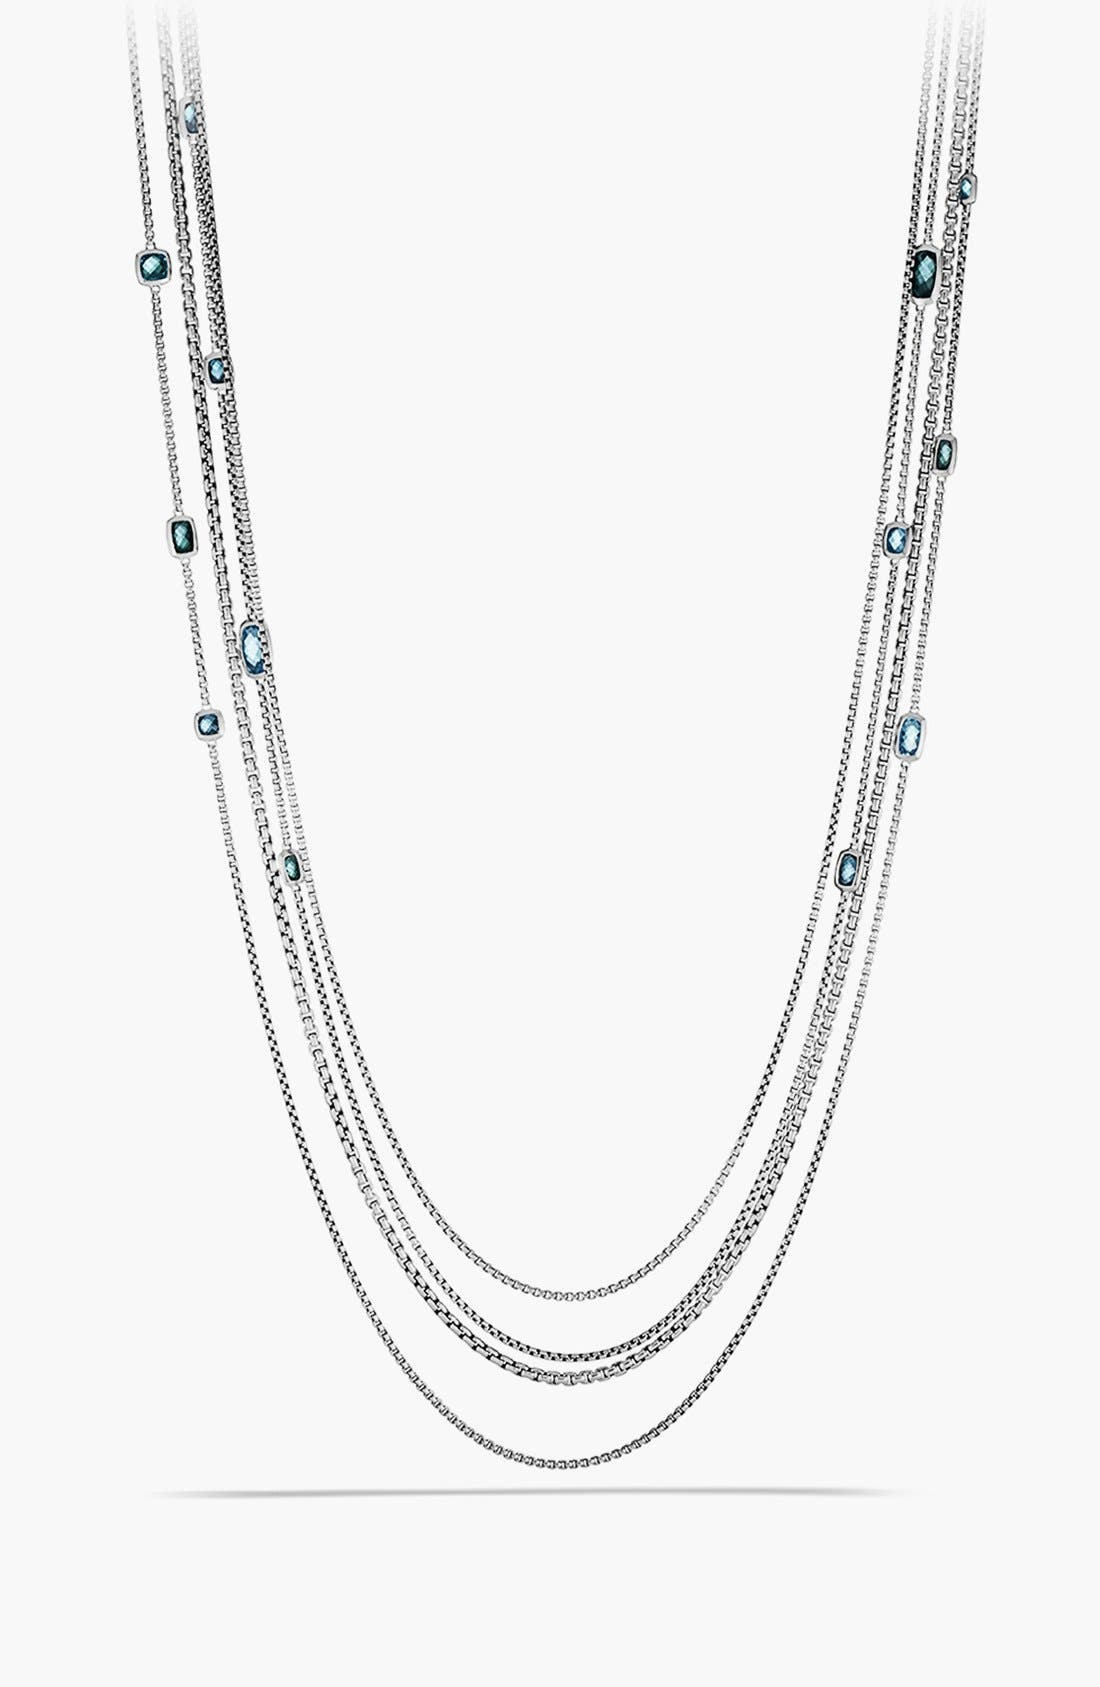 Alternate Image 1 Selected - David Yurman 'Confetti' Station Necklace with Blue Topaz and Hampton Blue Topaz